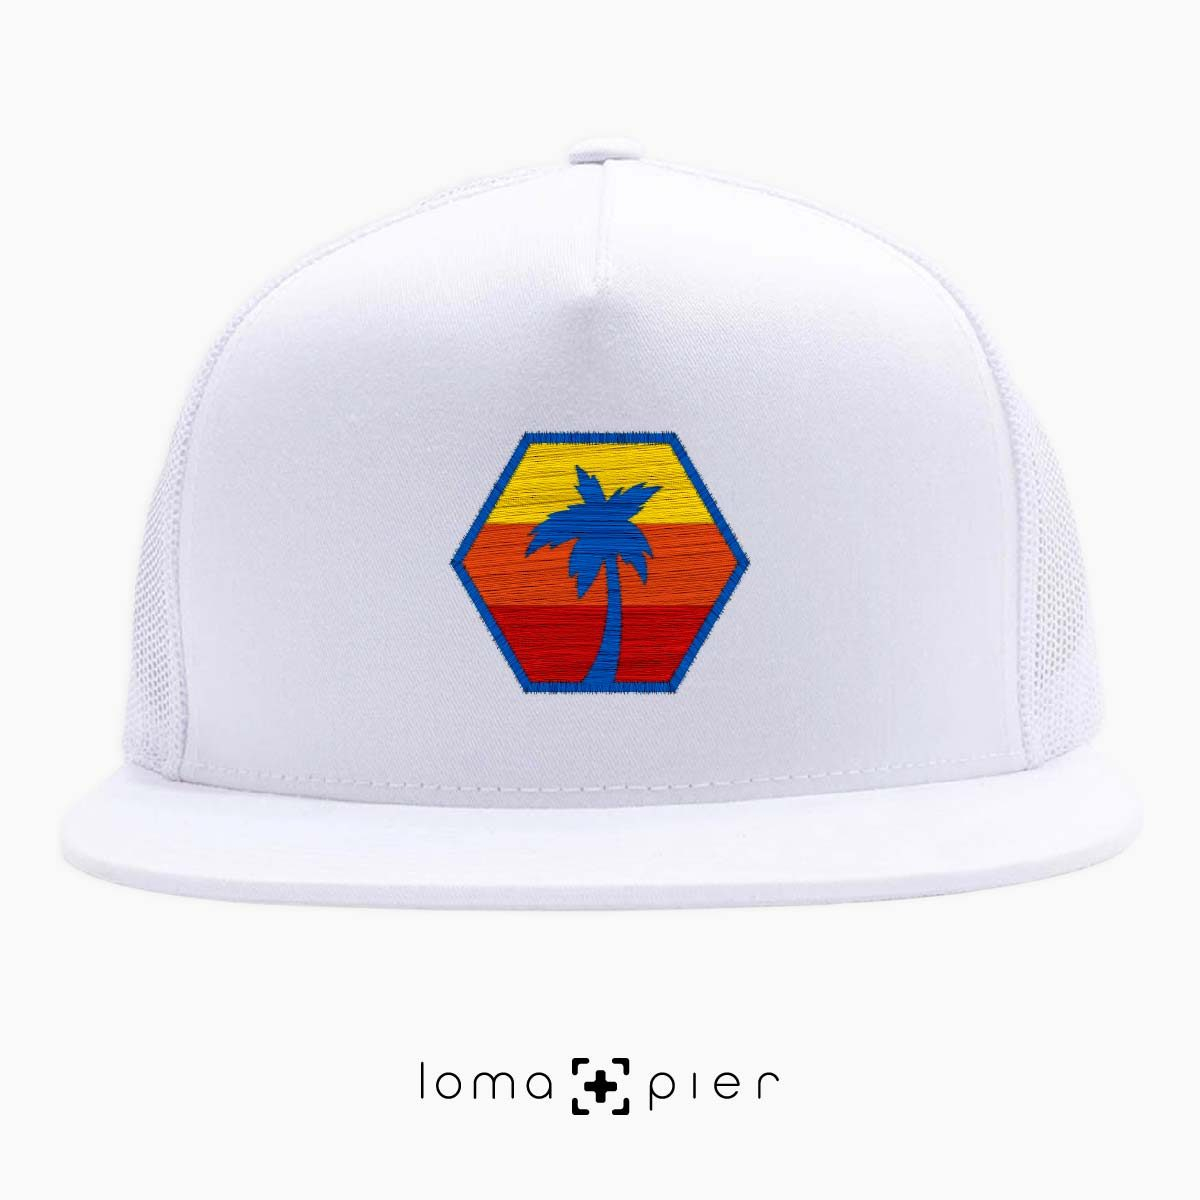 HEXAGON TO THE BEACH netback hat in white by loma+pier hat store